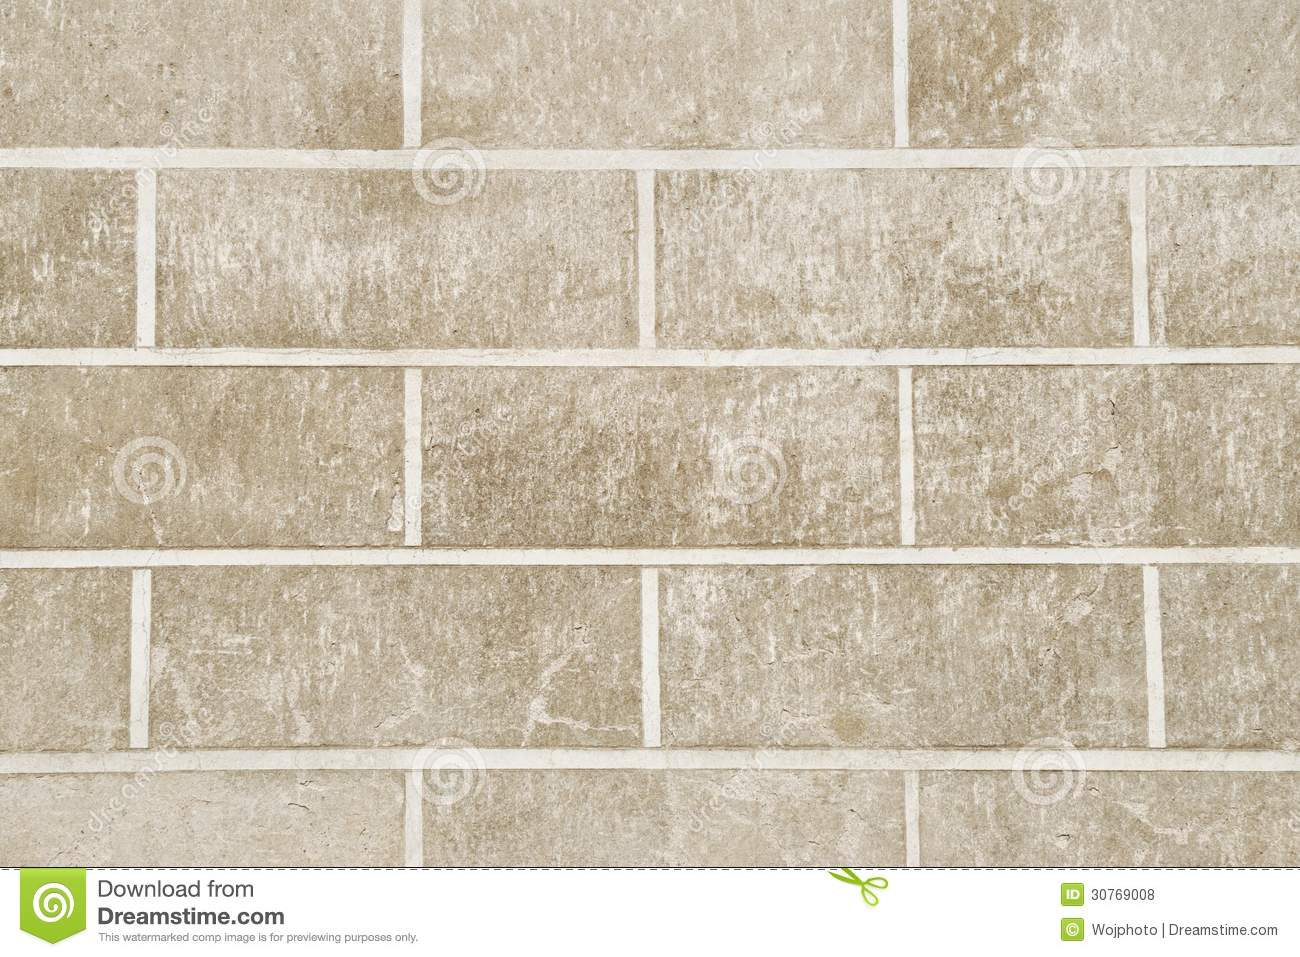 Decorative stone castle wall texture royalty free stock - Brique decorative blanche ...